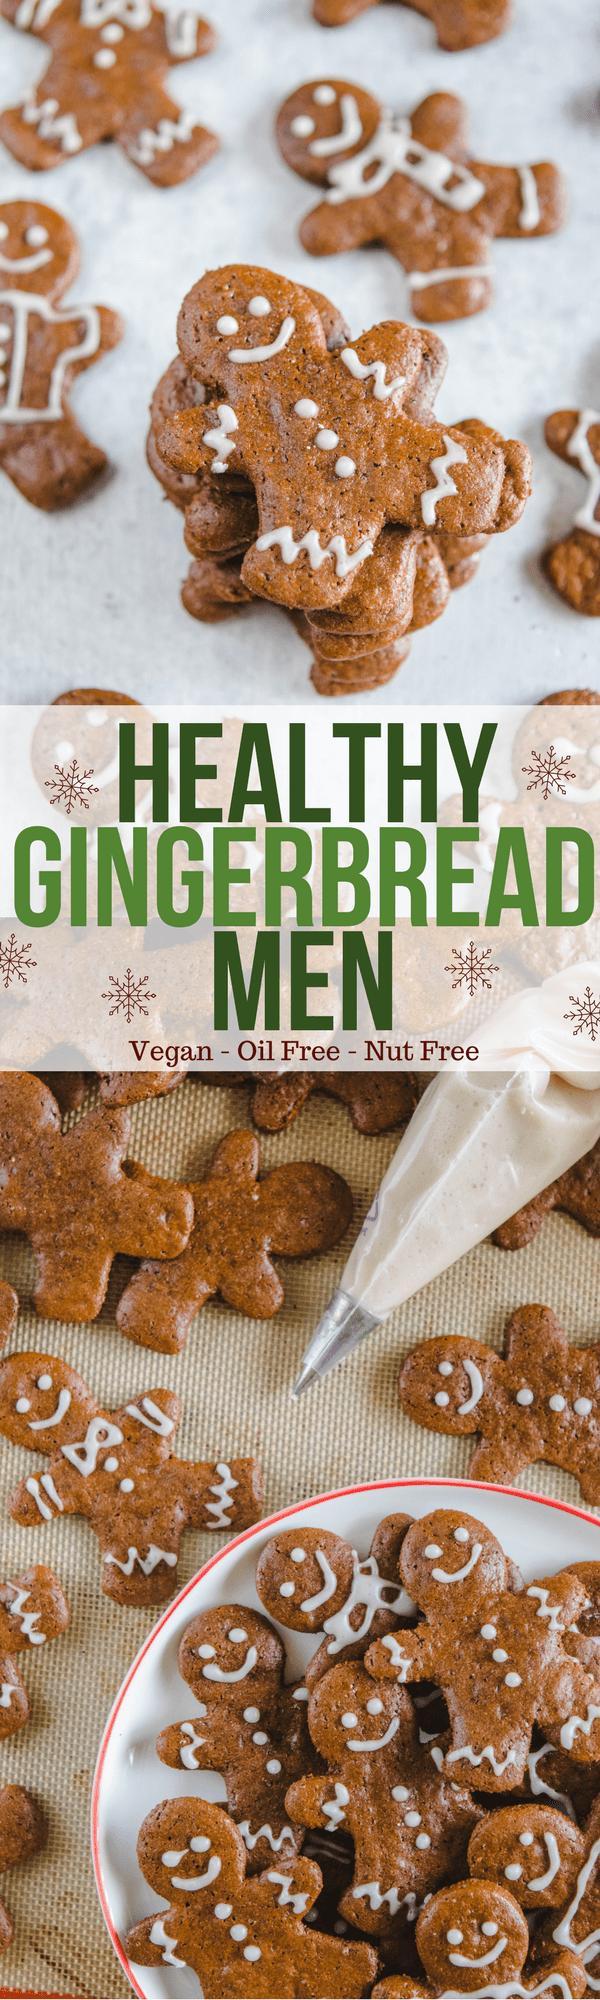 Crunchy Vegan Gingerbread Cookies - Nut Free and Healthy Holiday Recipe